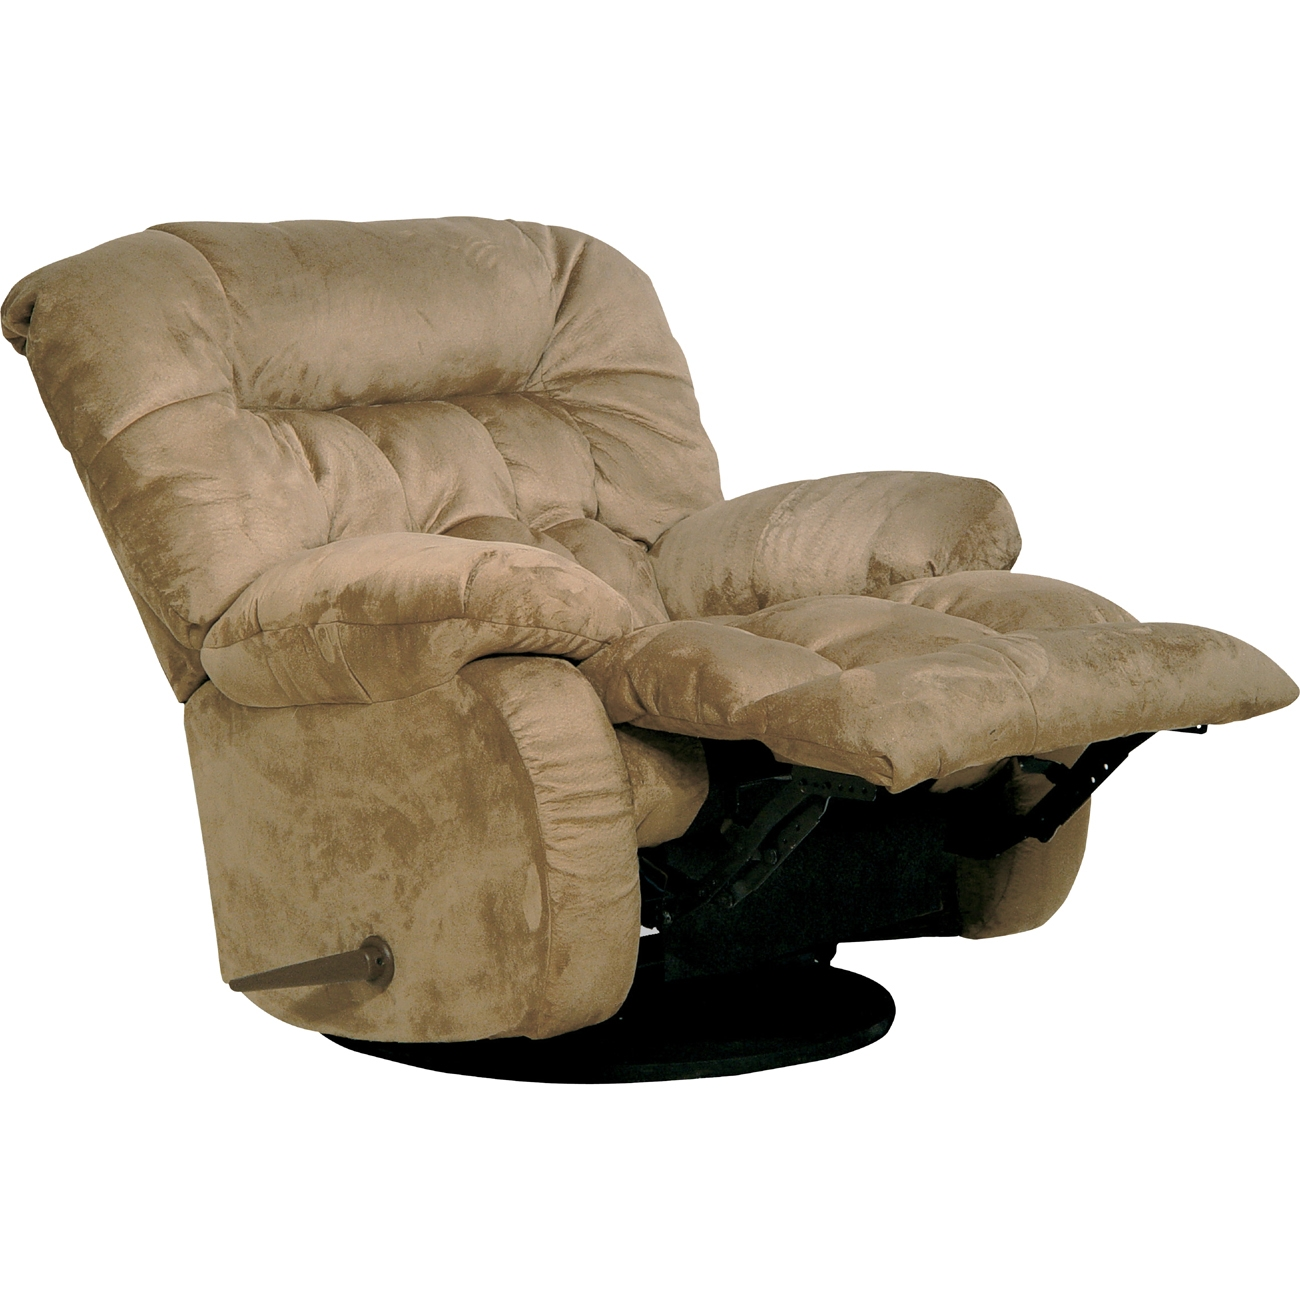 Brown Chaise Swivel Glider Recliner  / $15.99 A Week